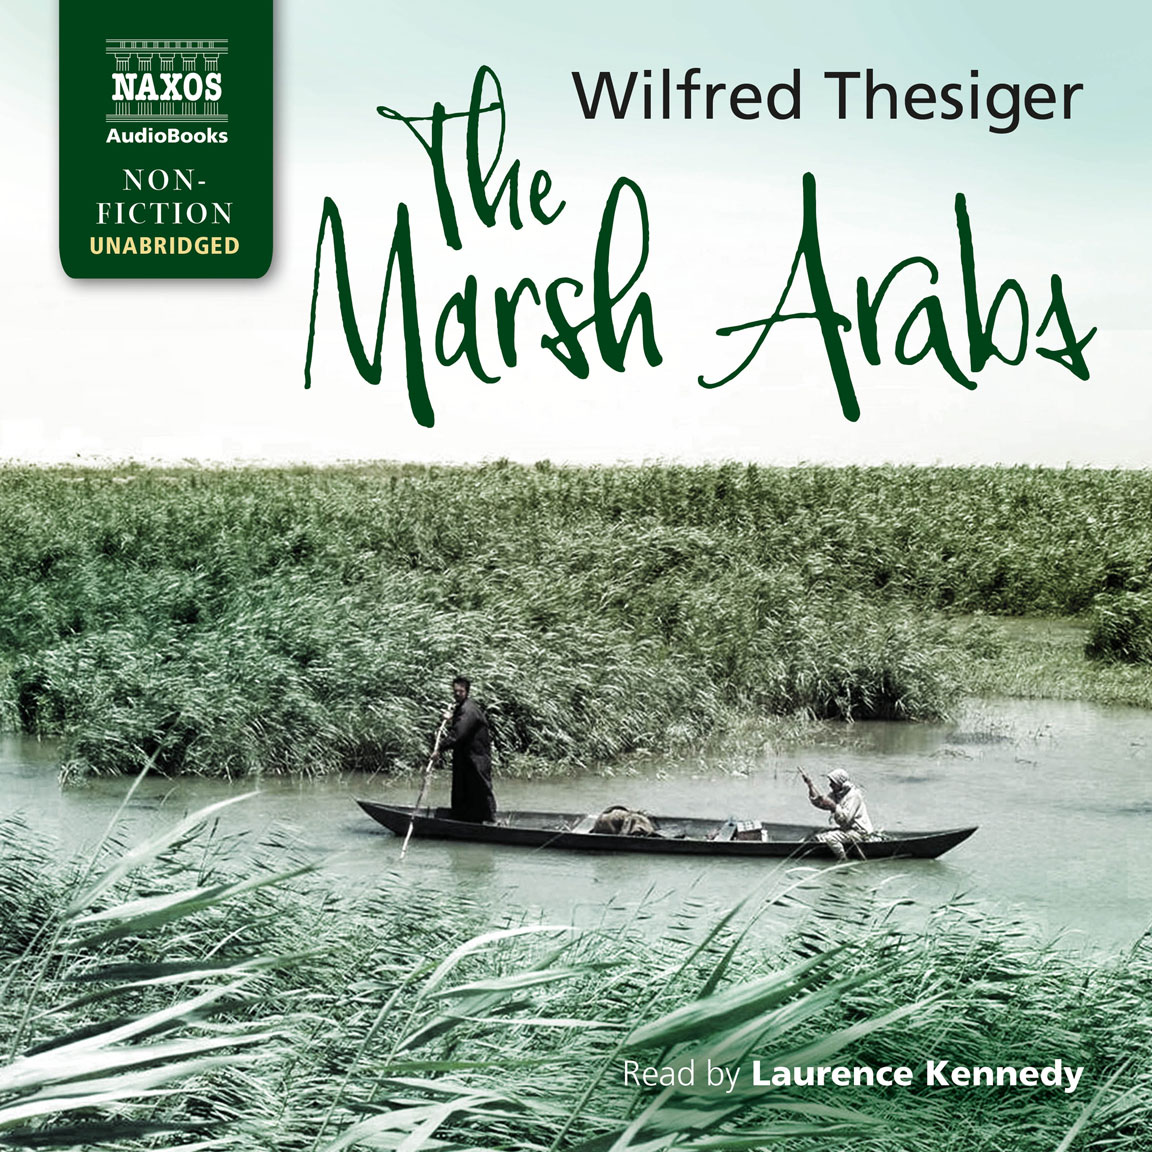 The Marsh Arabs (unabridged)